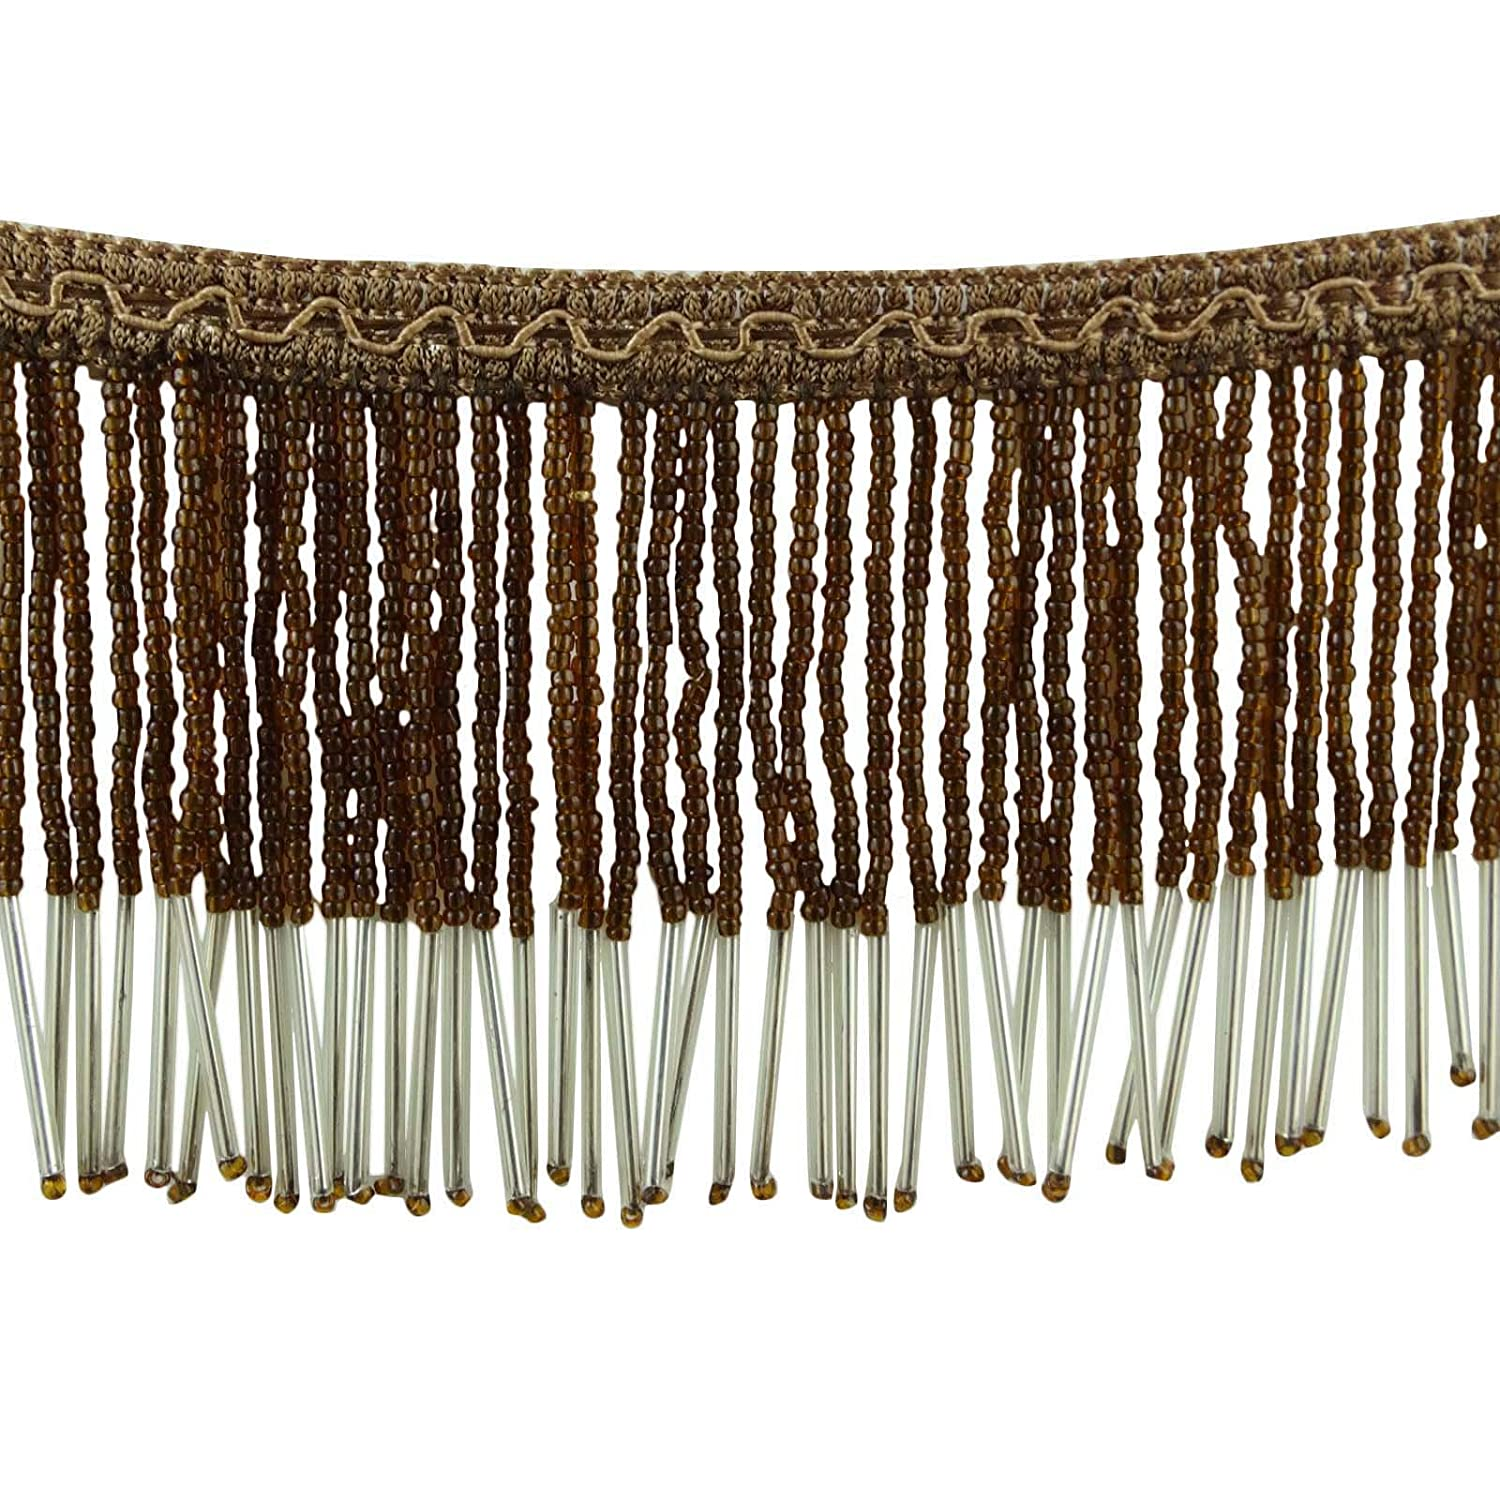 Decorative Beaded Fringe Trim Upholstery Ribbon Curtain Craft Supply By The Yard Knitwit